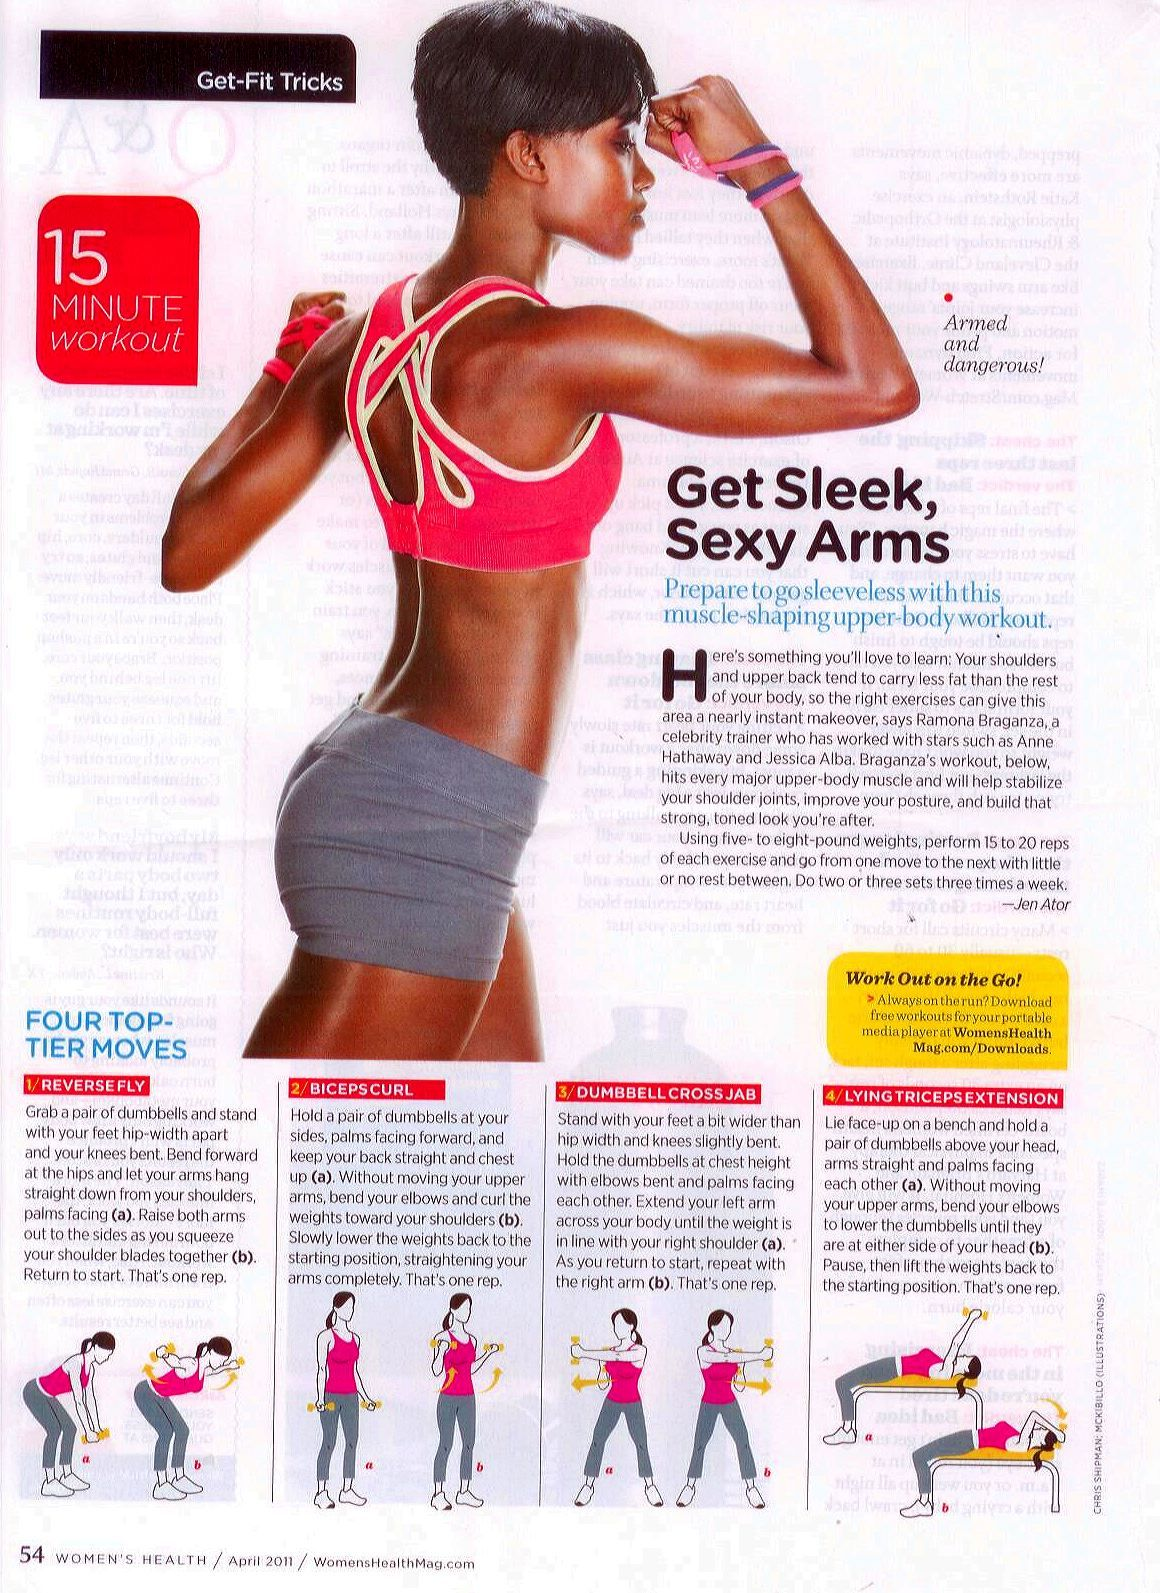 pics Arm Exercises for Women: Get Sleek, Sexy Arms